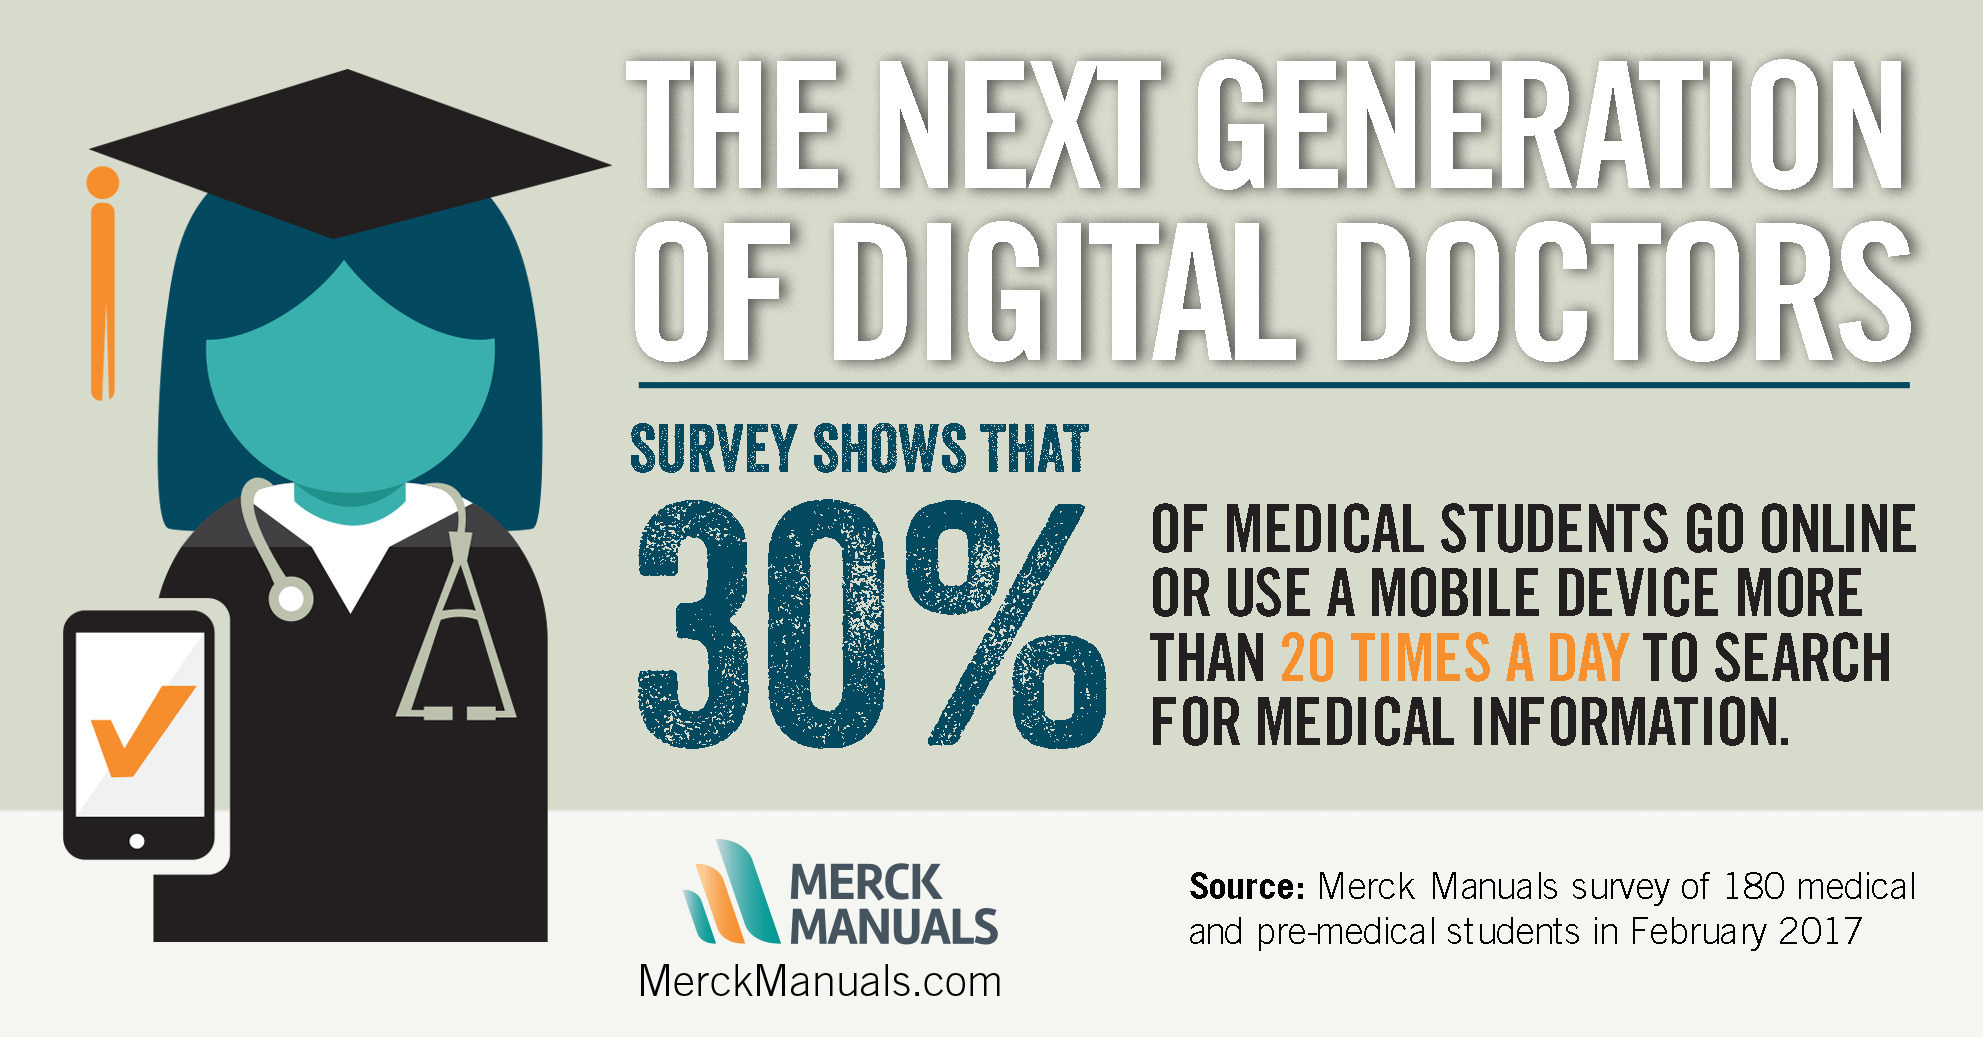 The Merck Manuals surveyed 180 medical and pre-medical students in February 2017.